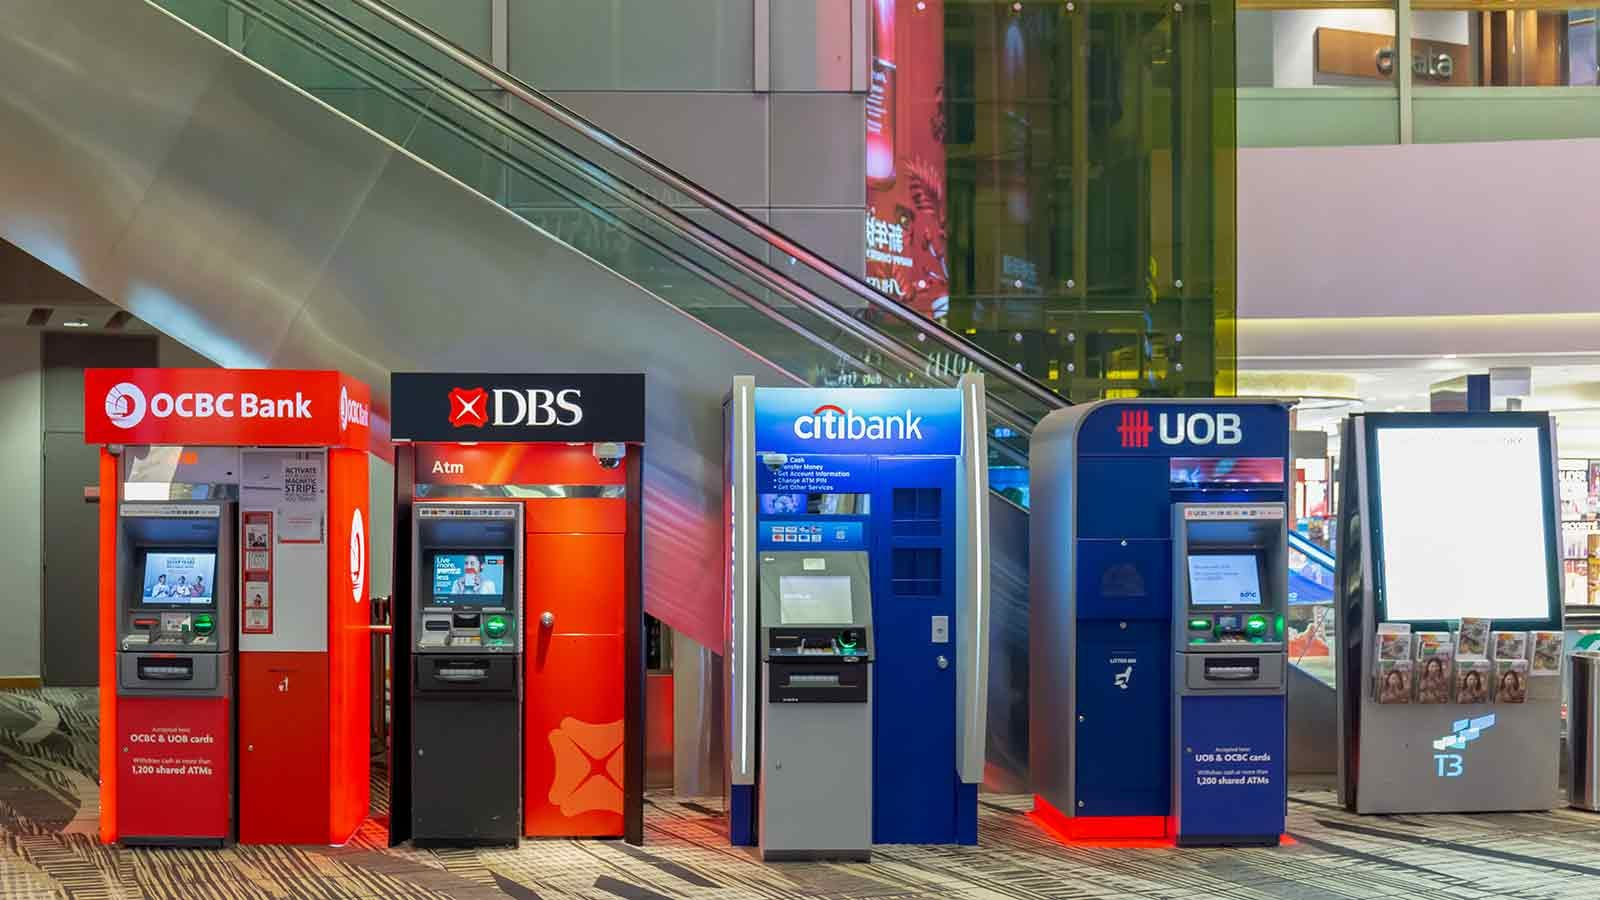 A row of currency exchange ATMs in an airport.